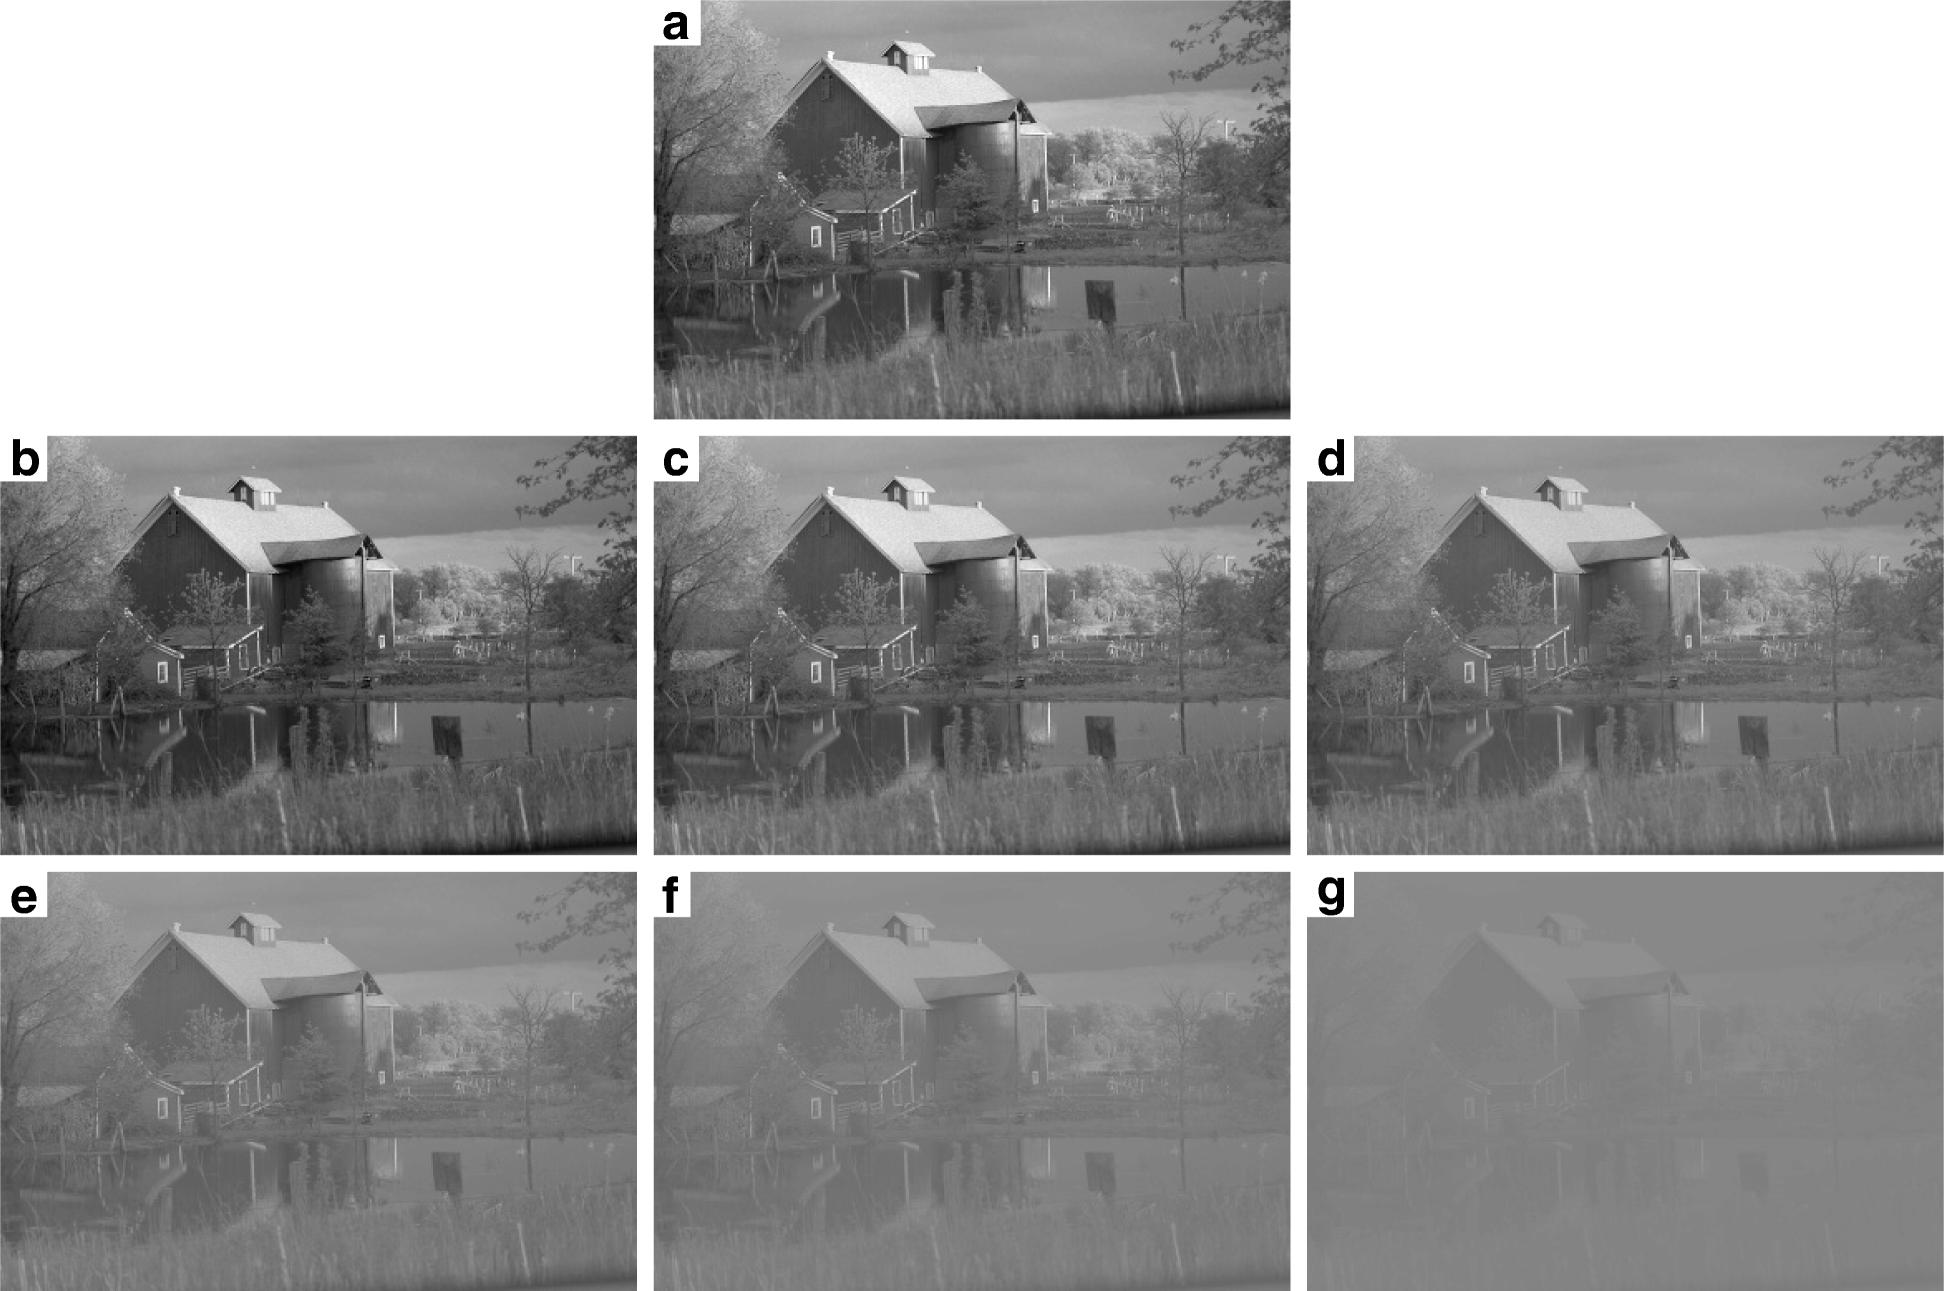 Machine learning hyperparameter selection for Contrast